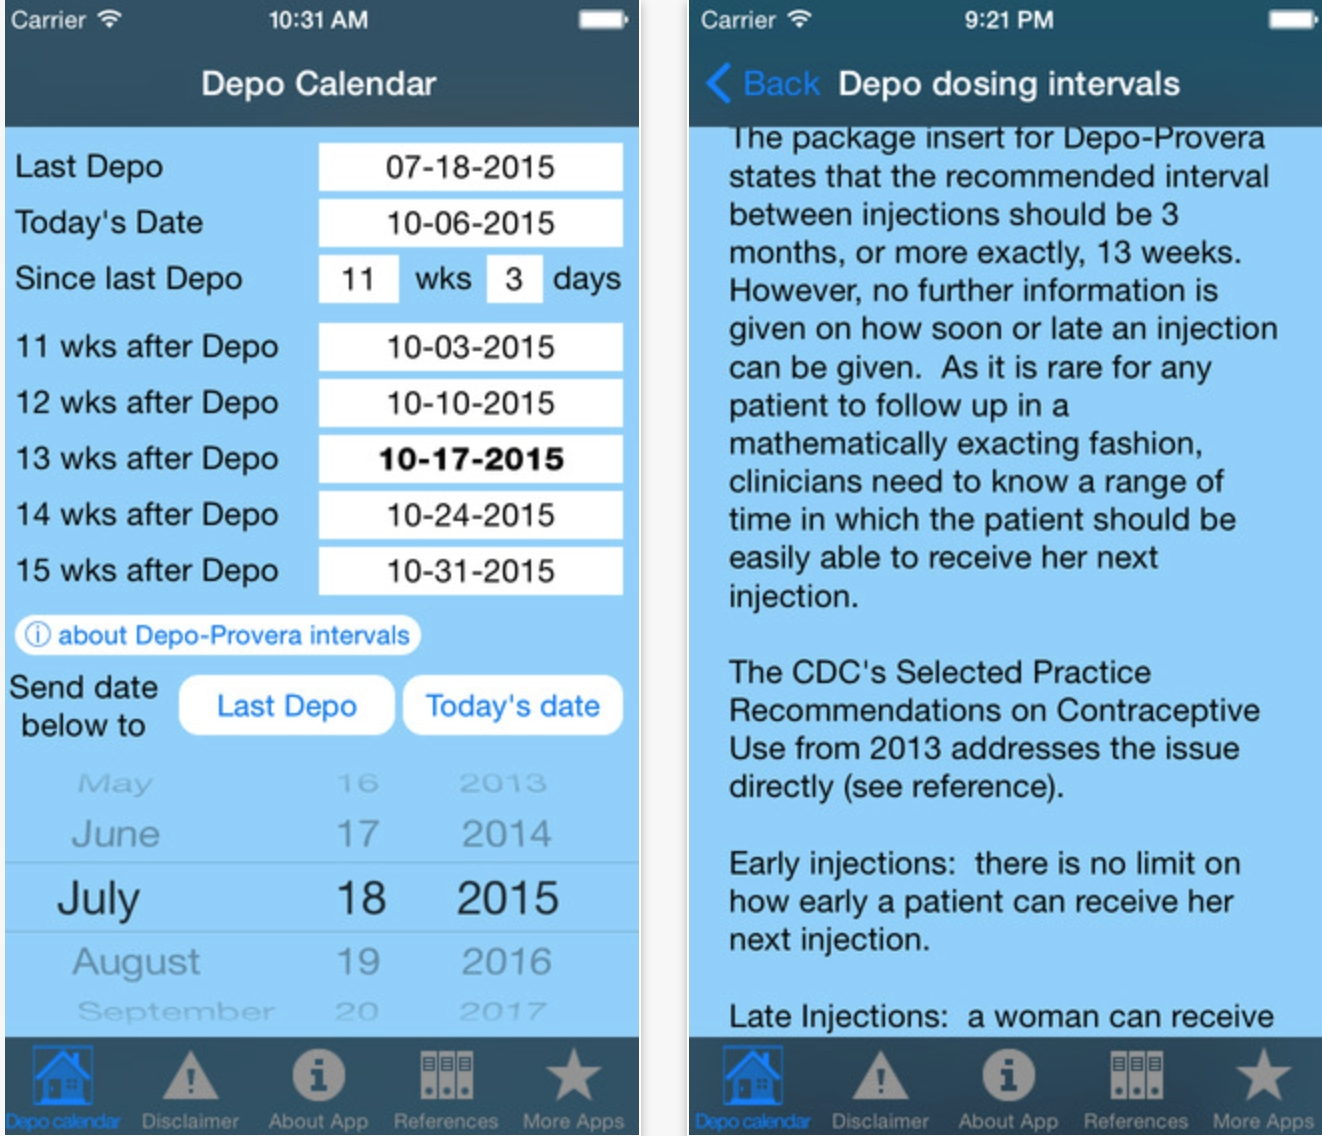 Depo Calendar App Could Significantly Improve Contraception  Depo Calendar Online